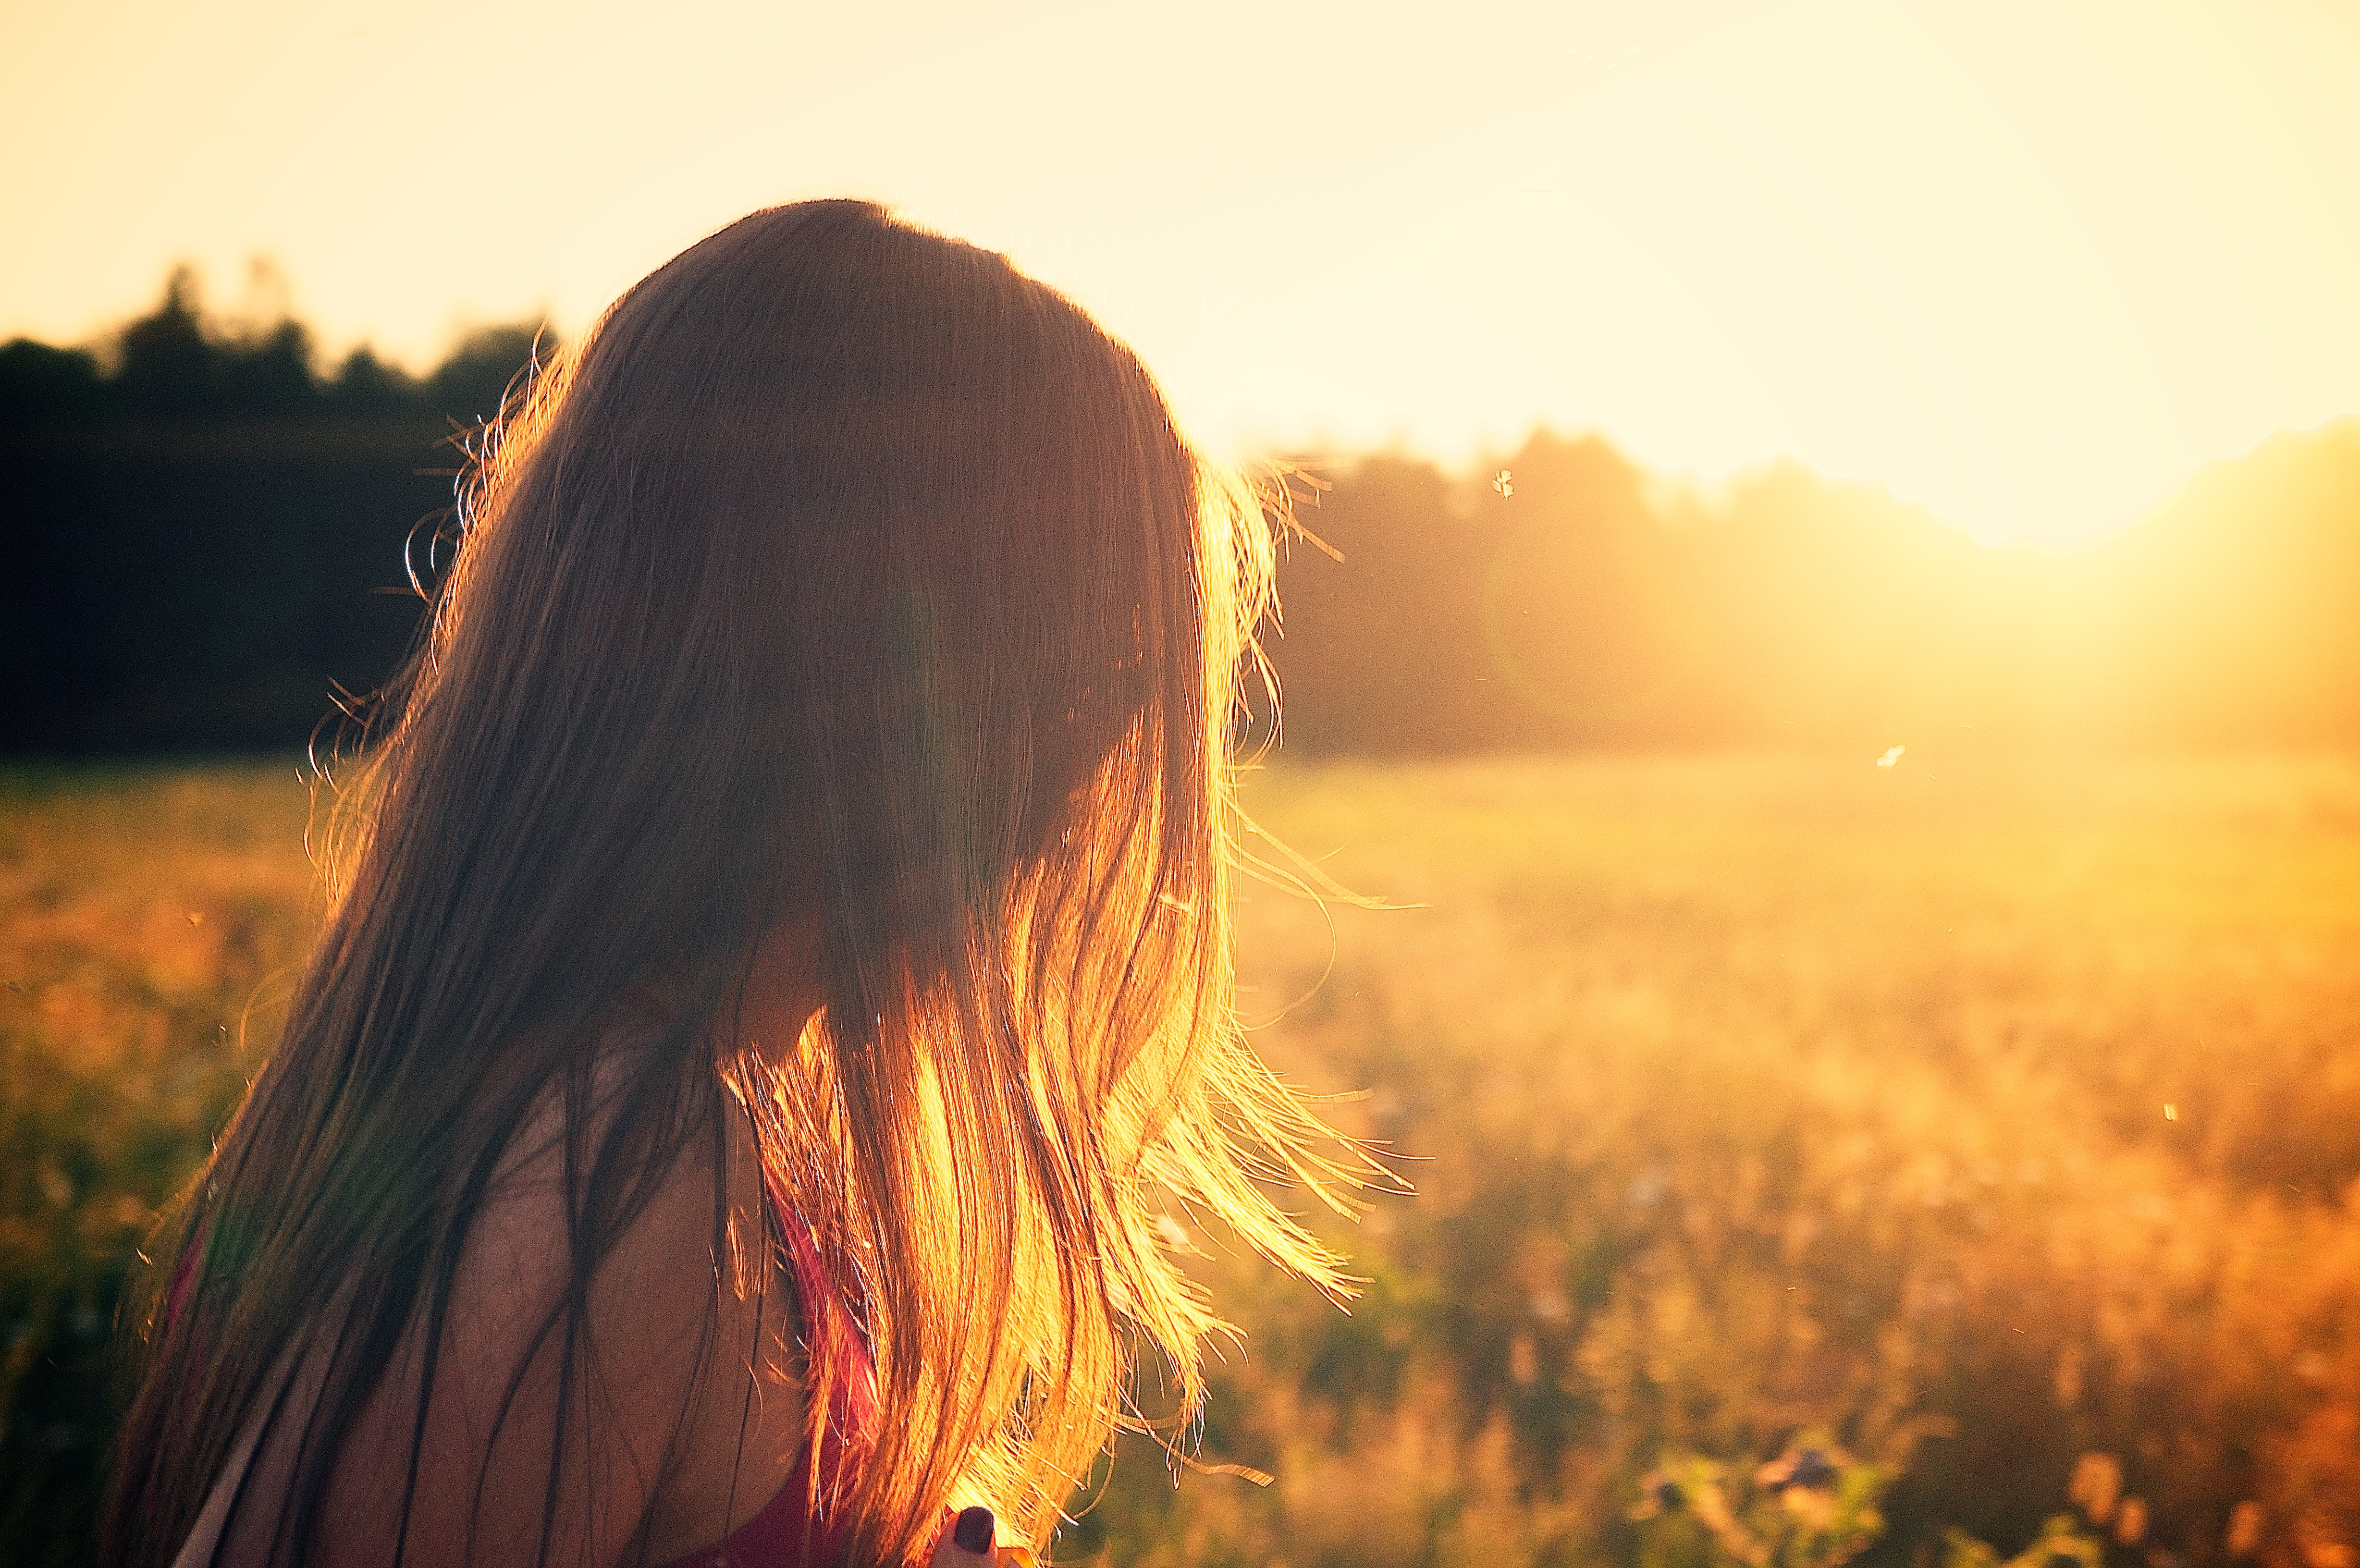 3 Surprising Ways To Attract Your Soul Mate